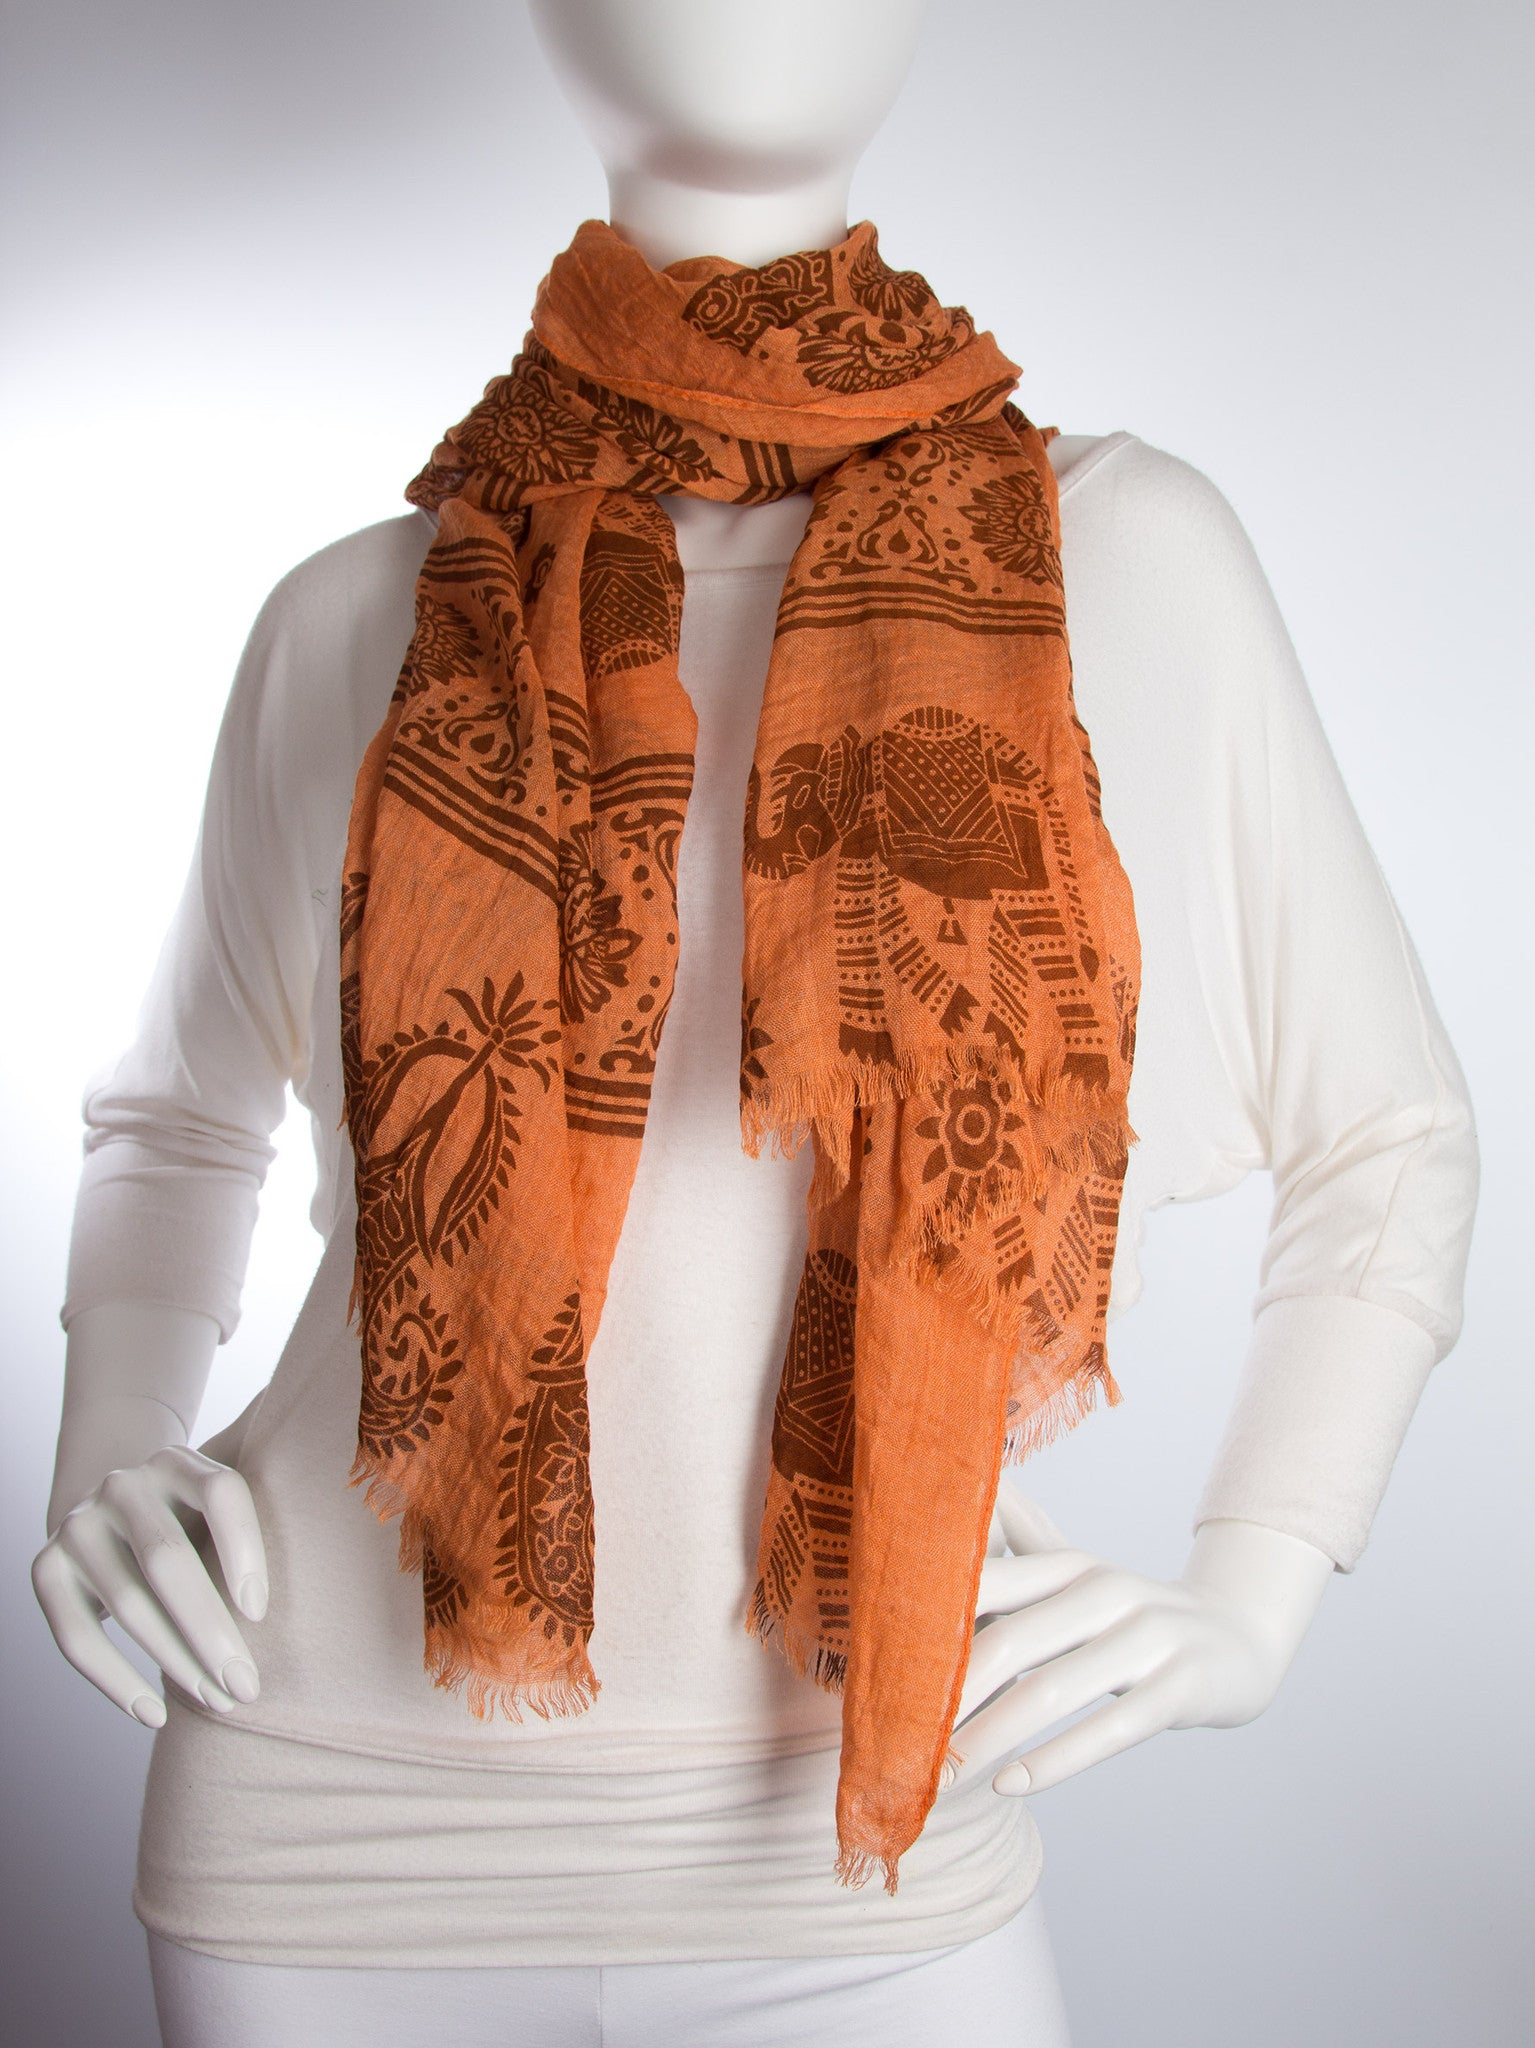 Scarves - Gajai Shawl,100% Cotton Paisley Indian Elephant Print Scarf -() Bohomonde  - 7